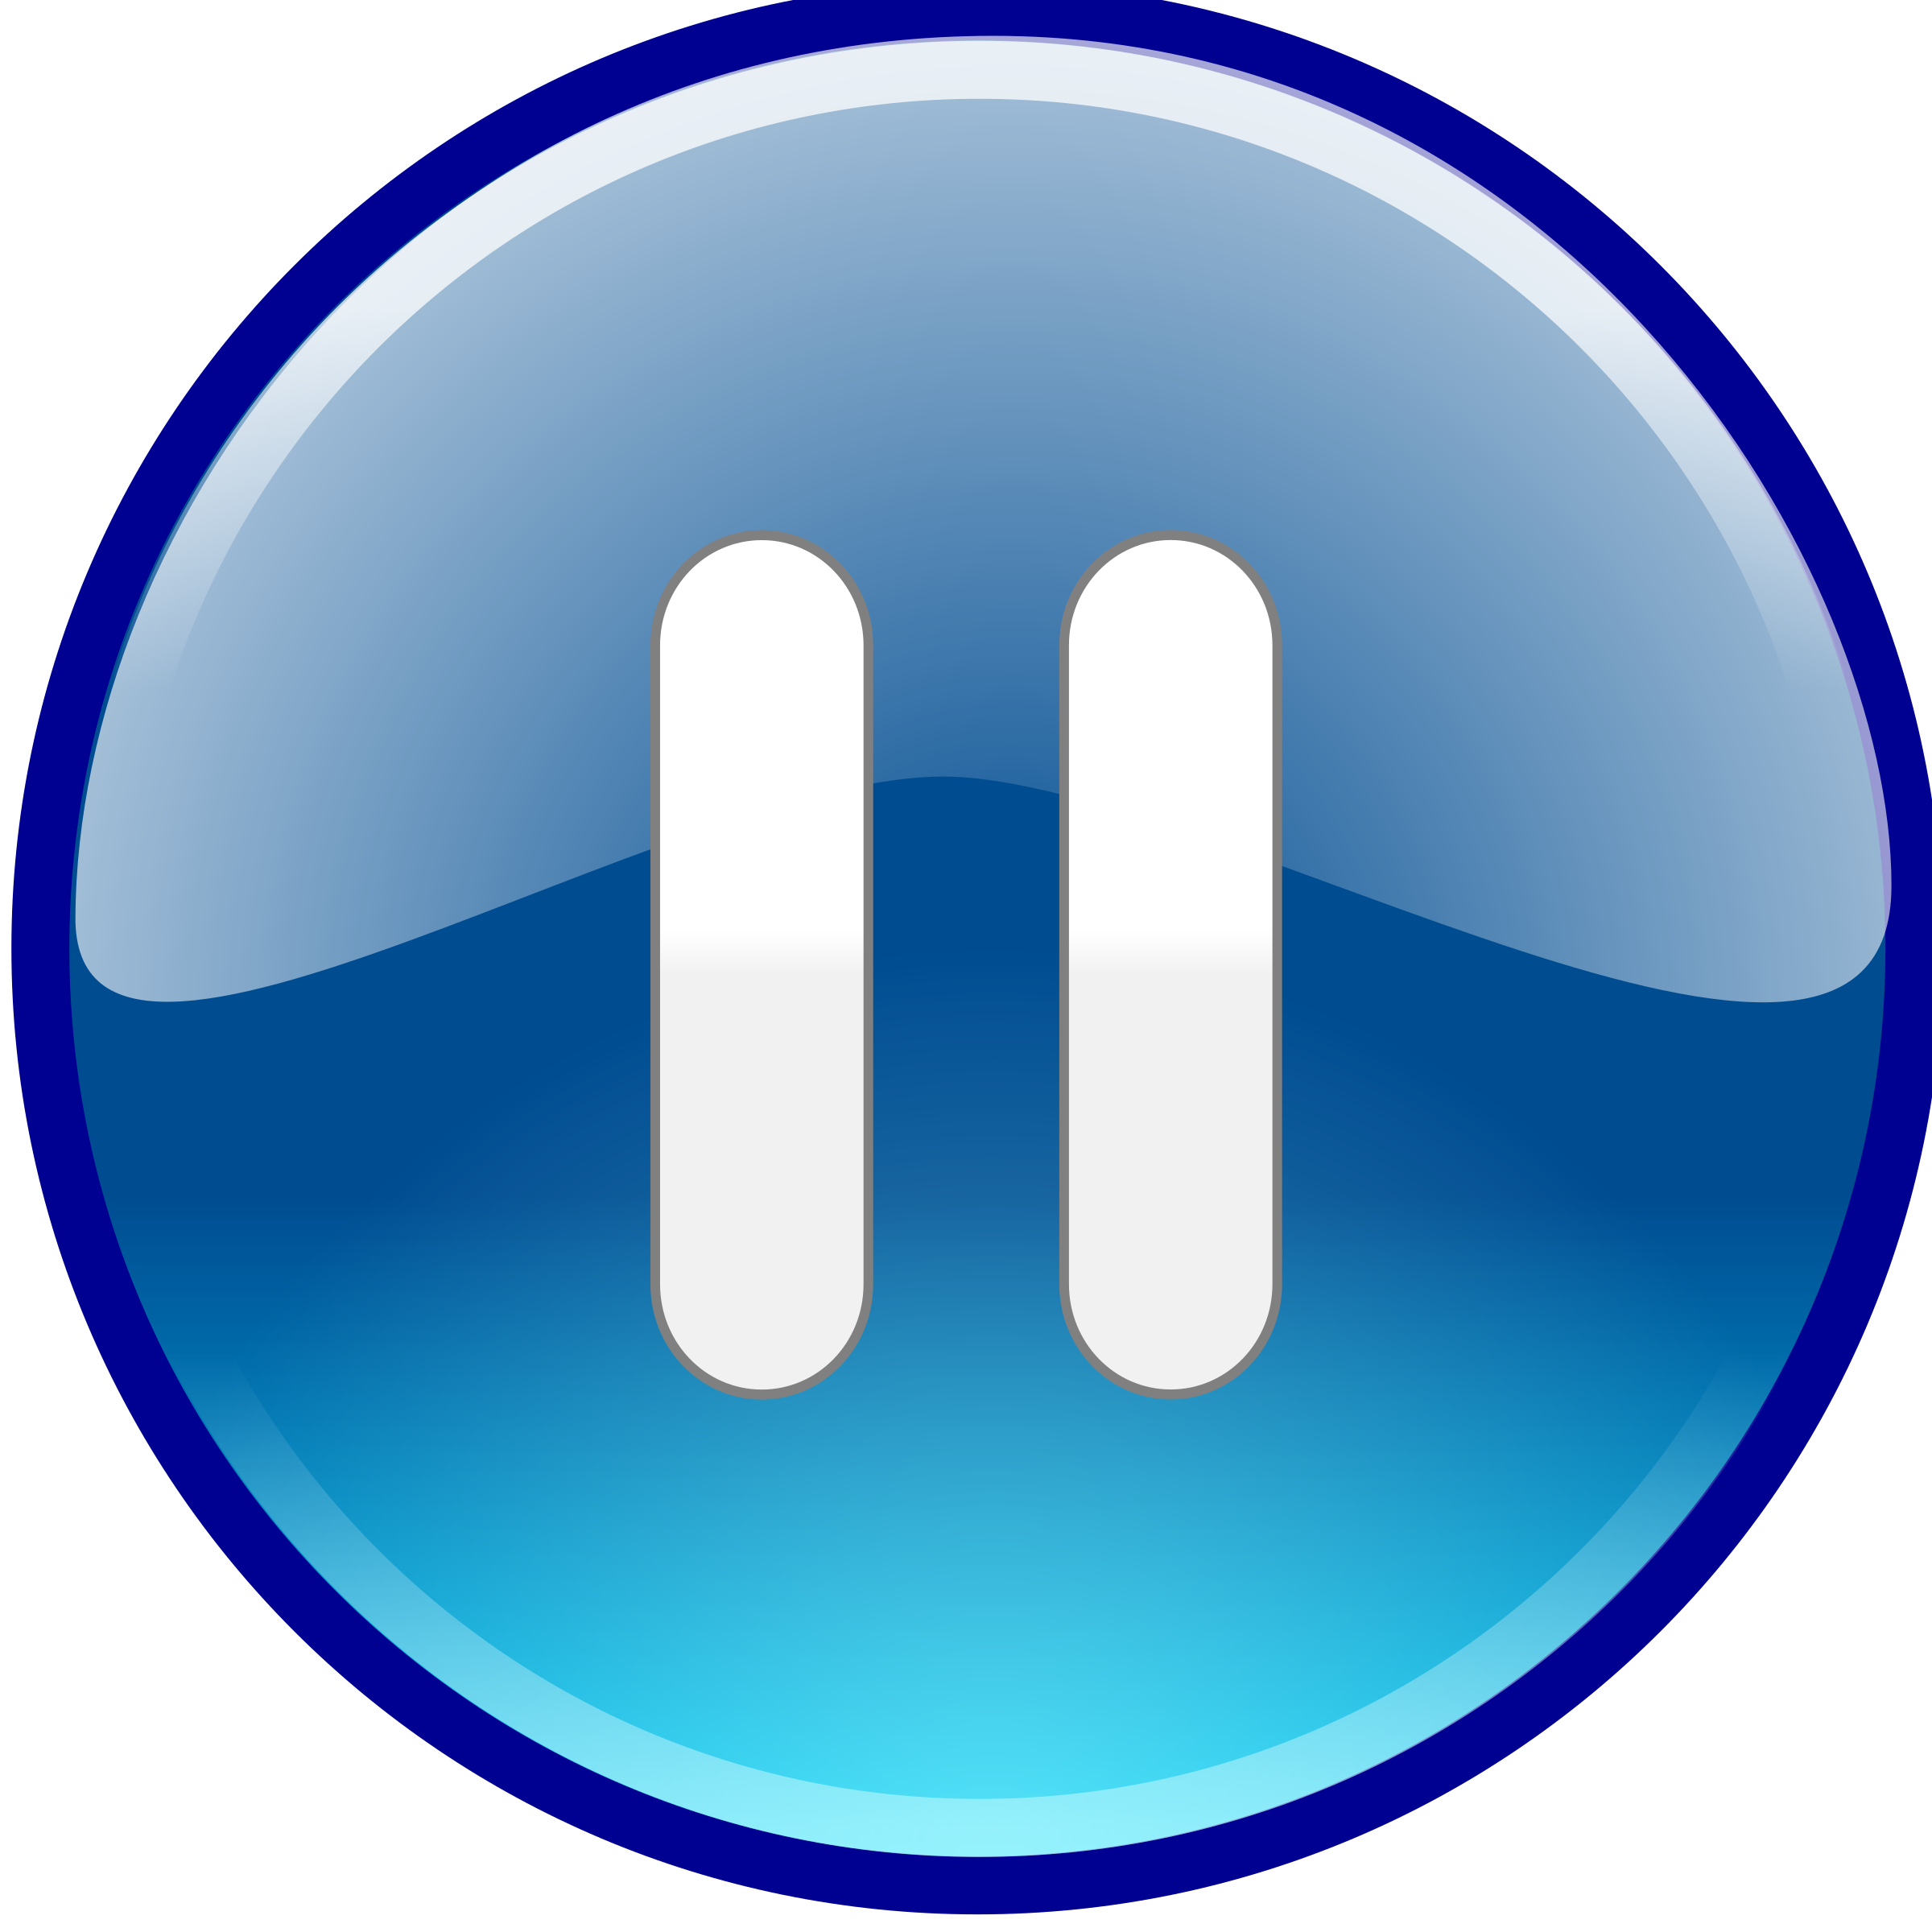 Windows media player pause. Buttons clipart press